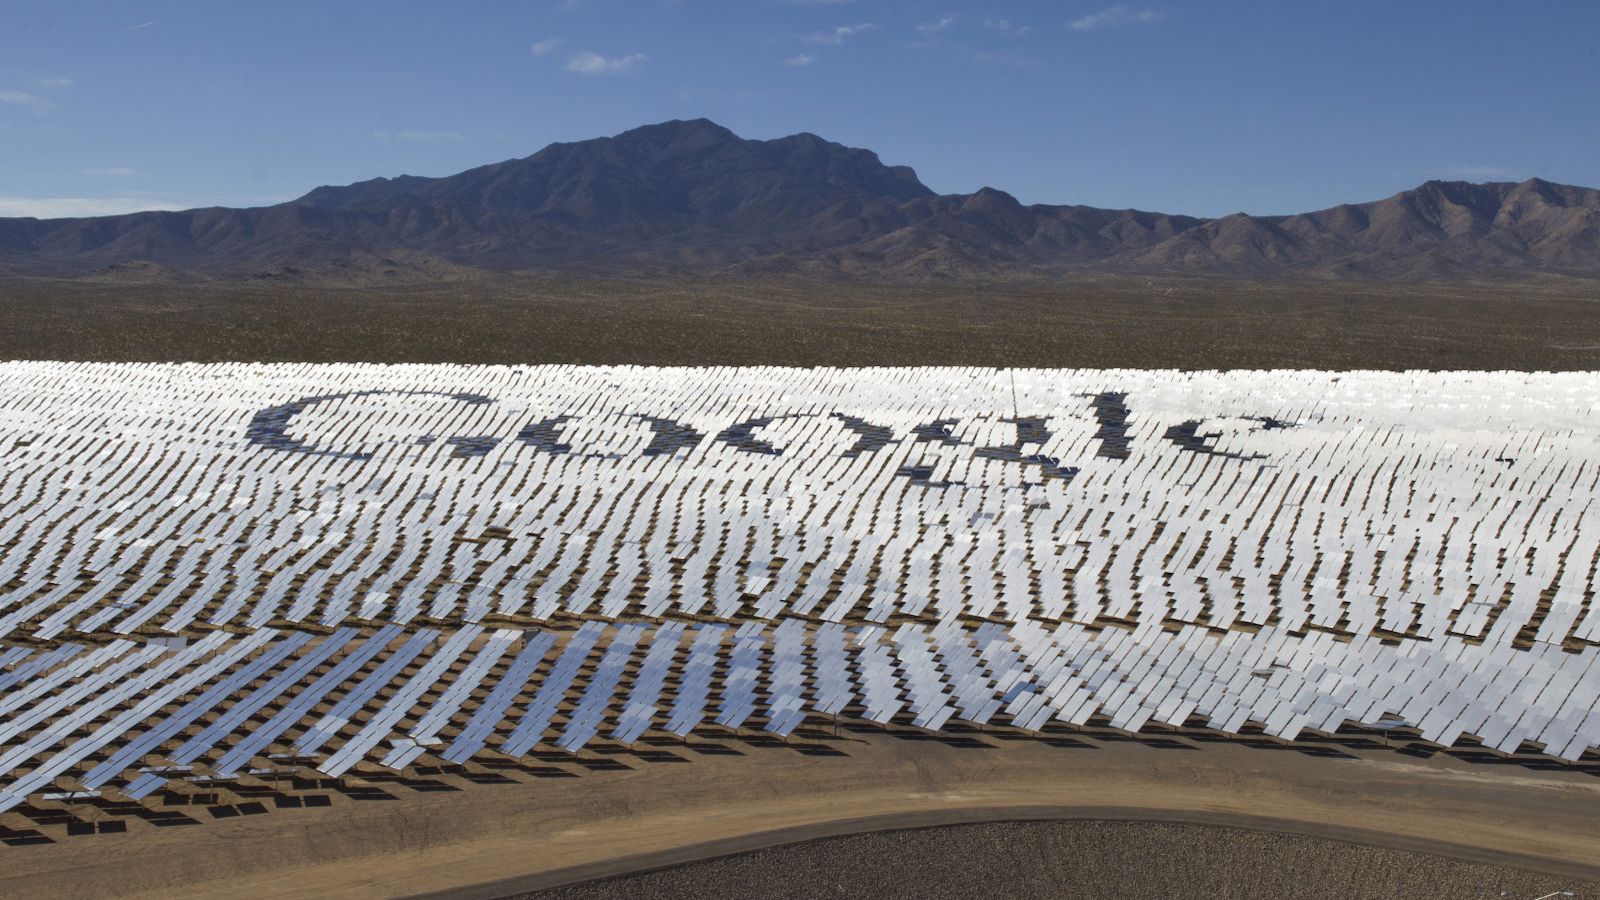 The Google logo is spelled out in heliostats (mirrors that track the sun and reflect the sunlight onto a central receiving point) during a tour of the Ivanpah Solar Electric Generating System in the Mojave Desert near the California-Nevada border February 13, 2014. The project, a partnership of NRG, BrightSource, Google and Bechtel, is the world's largest solar thermal facility and uses 347,000 sun-facing mirrors to produce 392 Megawatts of electricity, enough energy to power more than 140,000 homes. REUTERS/Steve Marcus (UNITED STATES - Tags: ENERGY SCIENCE TECHNOLOGY BUSINESS TPX IMAGES OF THE DAY LOGO) - RTX18S4Z